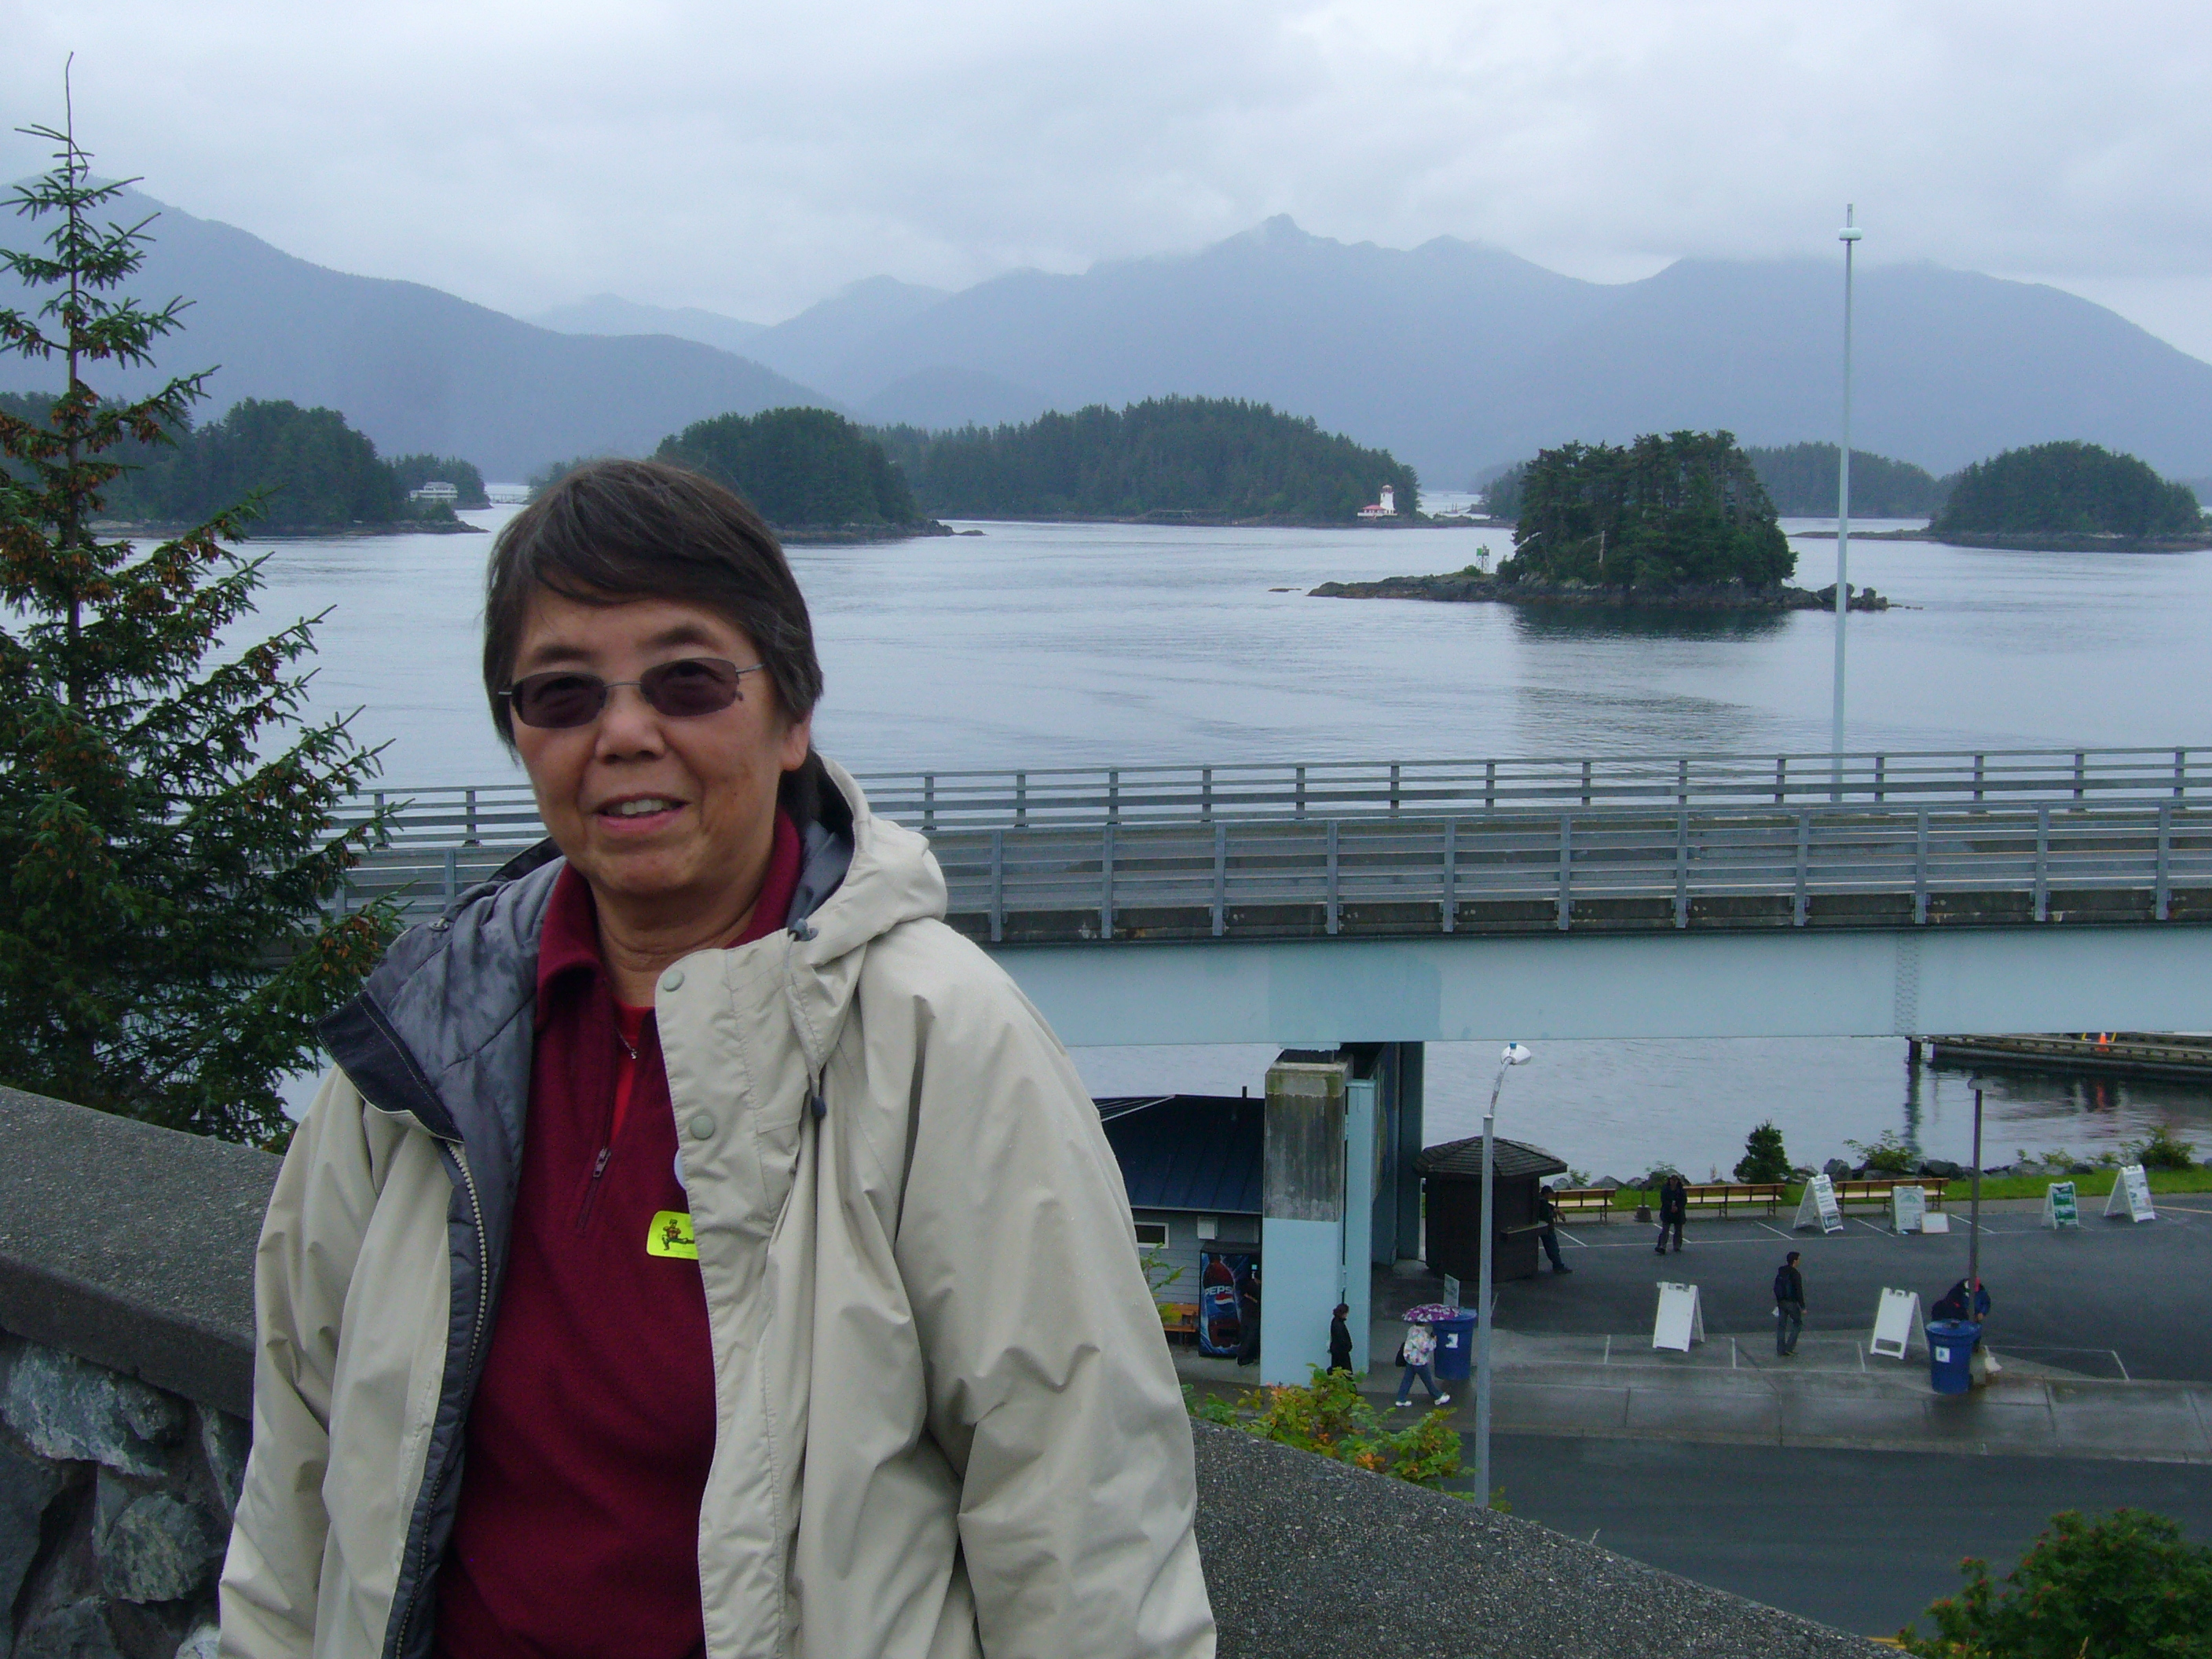 Betty at Sitka, Alaska, 8/11/2011